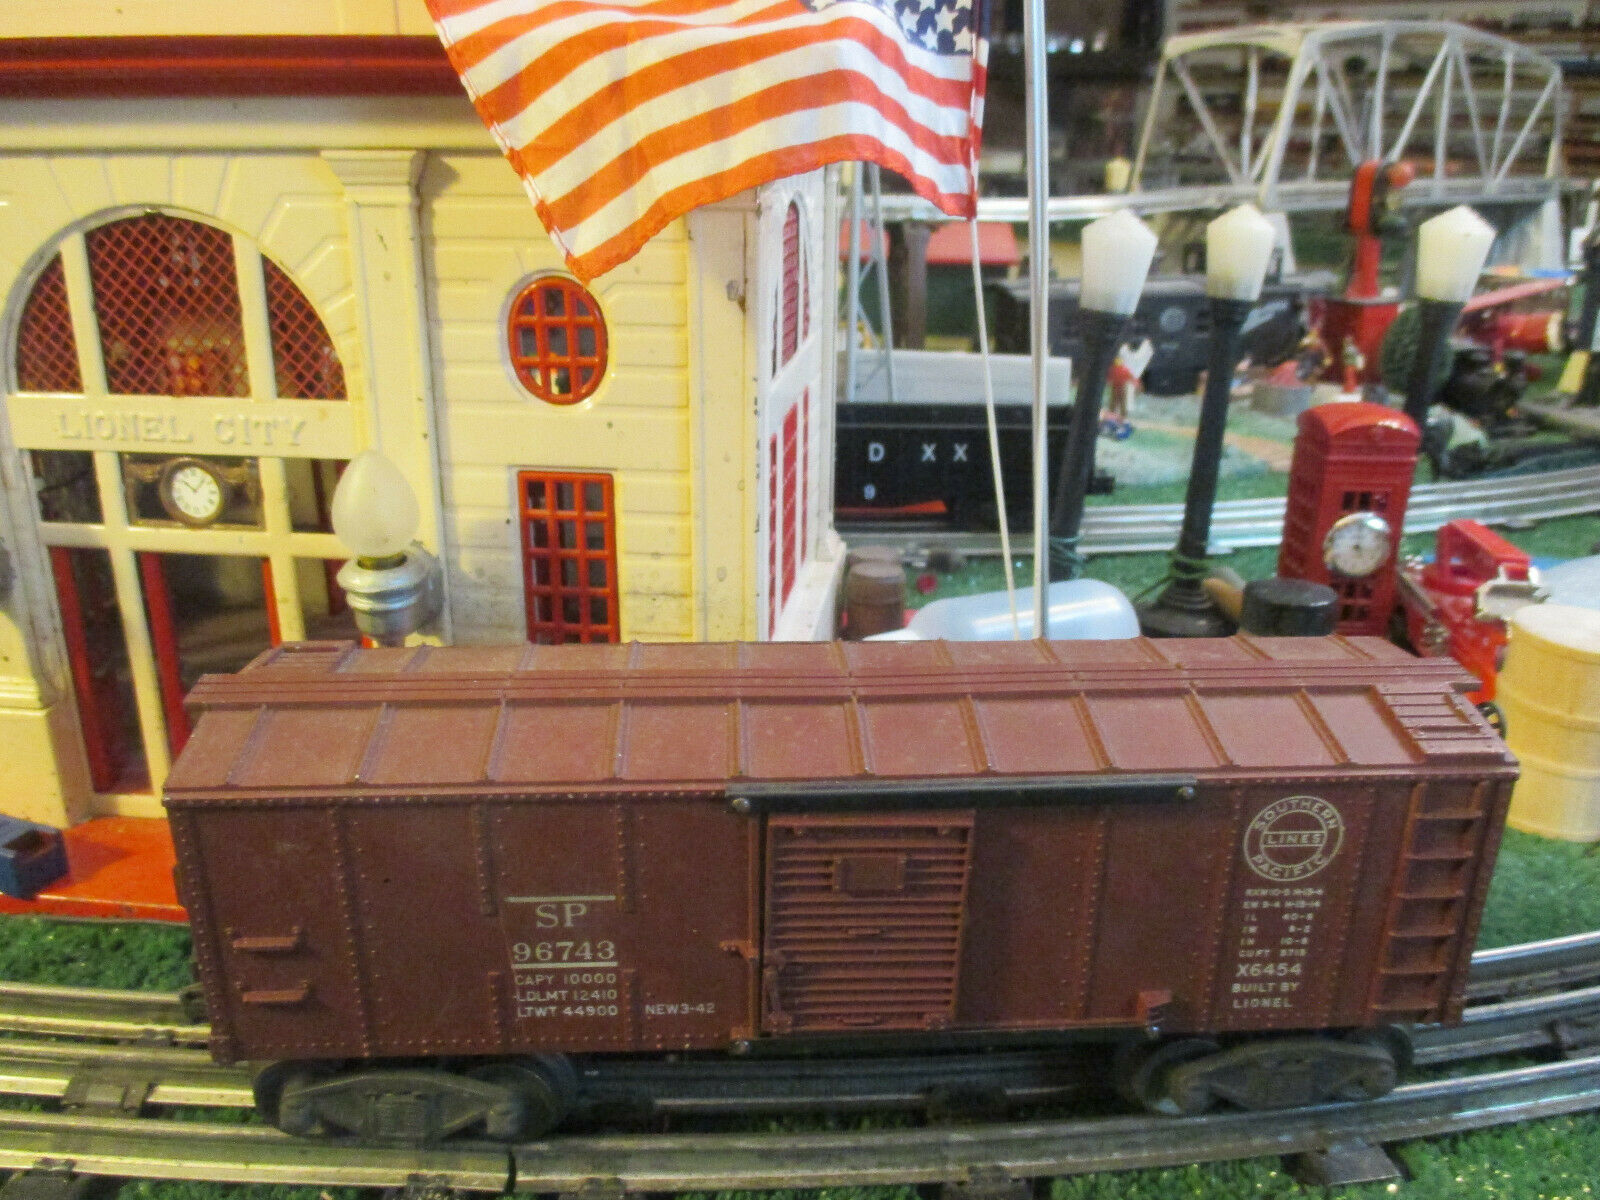 LIONEL POST WAR X6454  SOUTHRN PACIFIC BOX CAR VG ORIG COND 1949-52 NICE